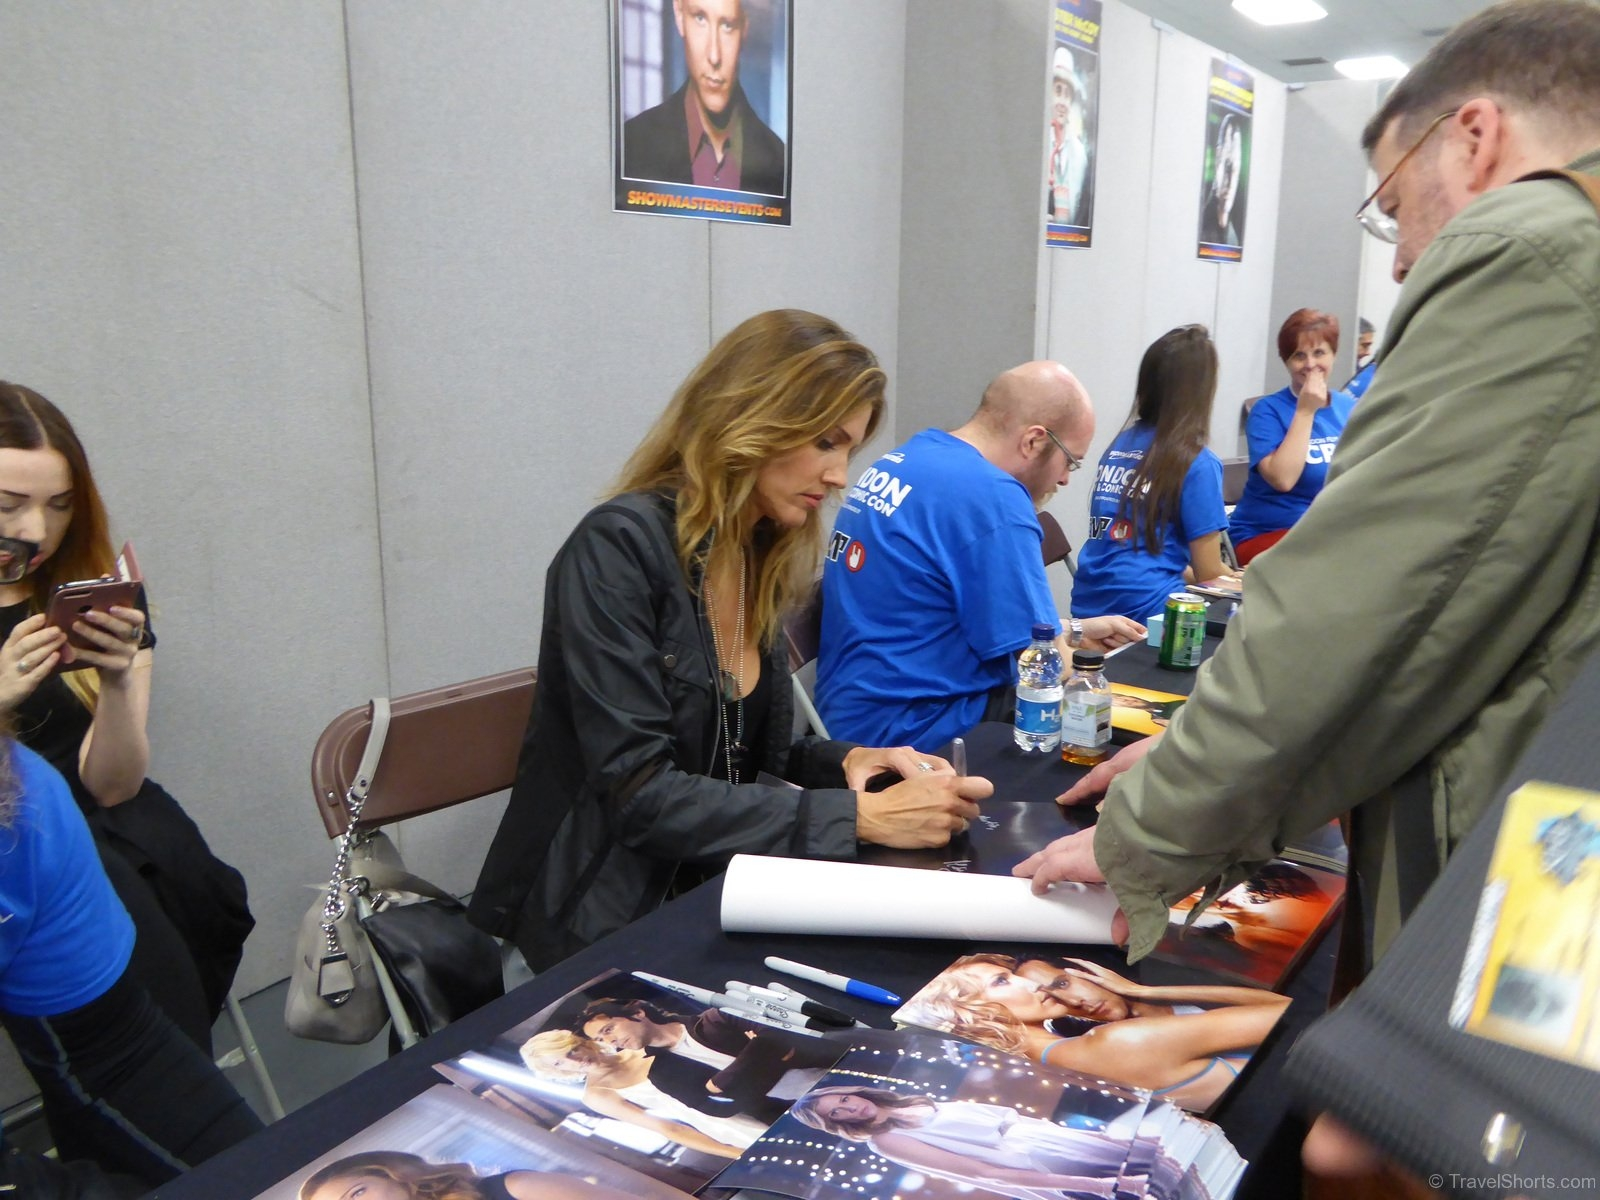 Tricia-Helfer-Signing-Autographs-3JPG